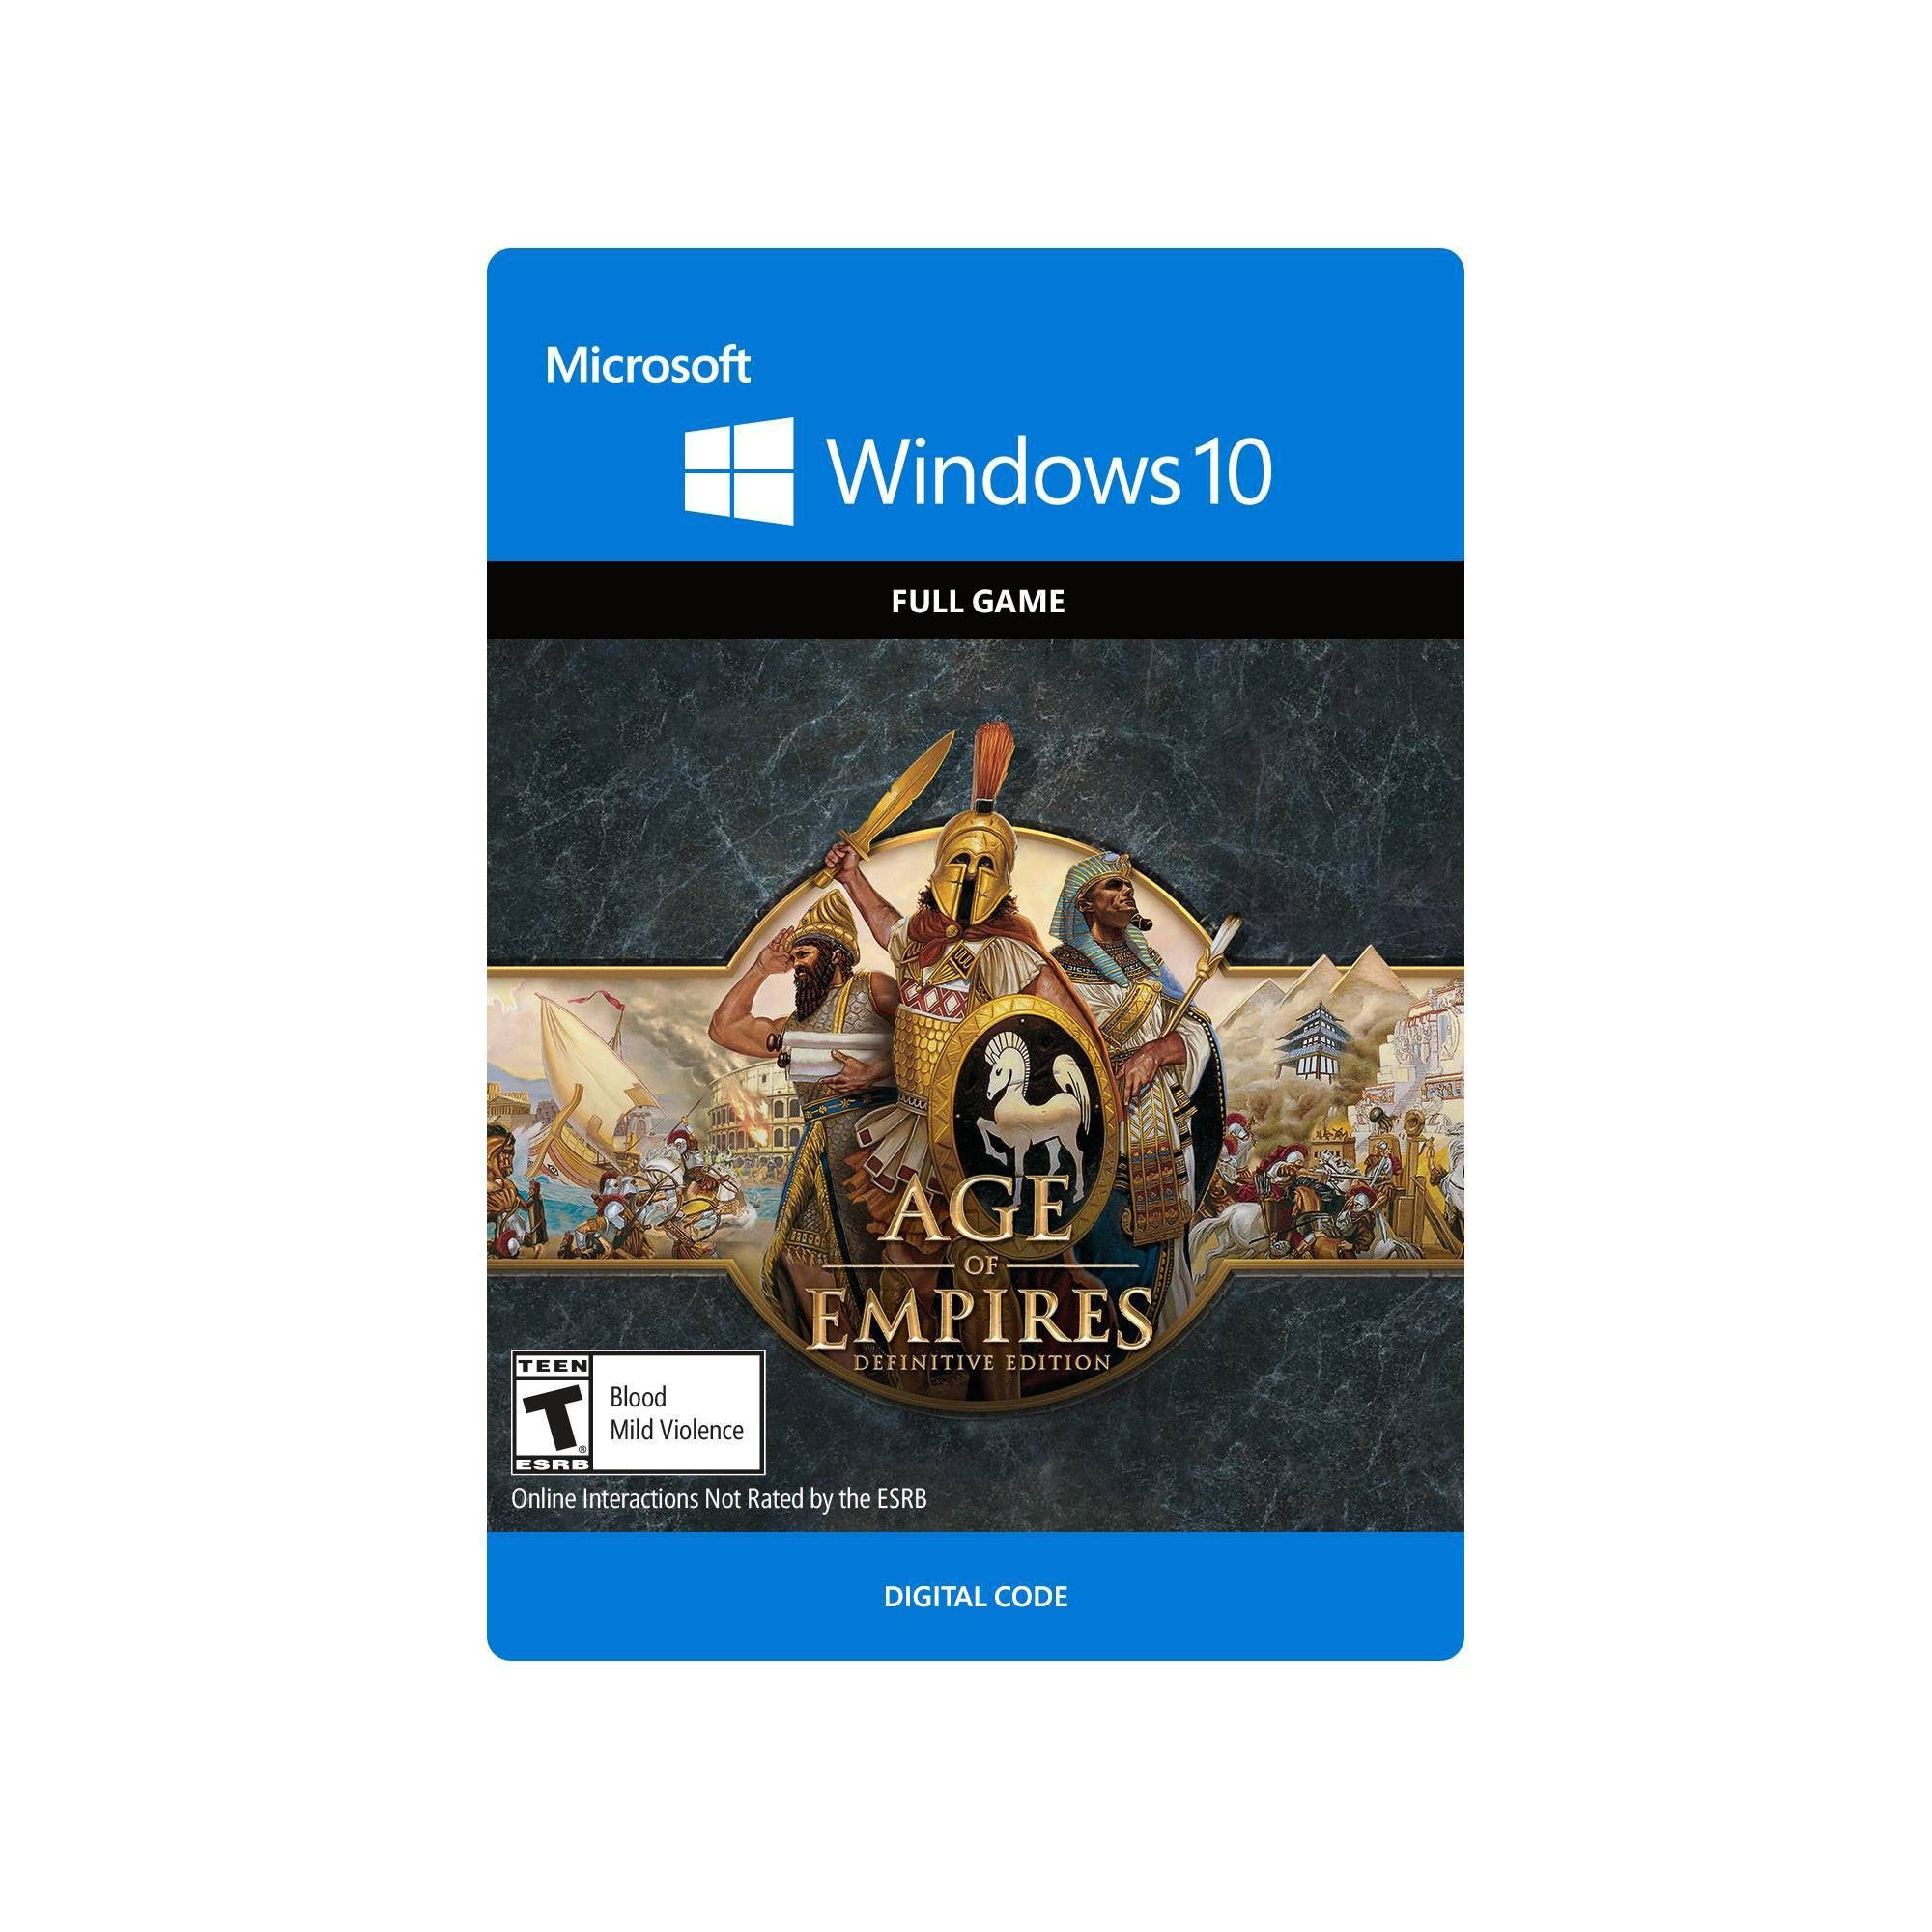 Age of Empires Definitive Edition PC Game (Digital